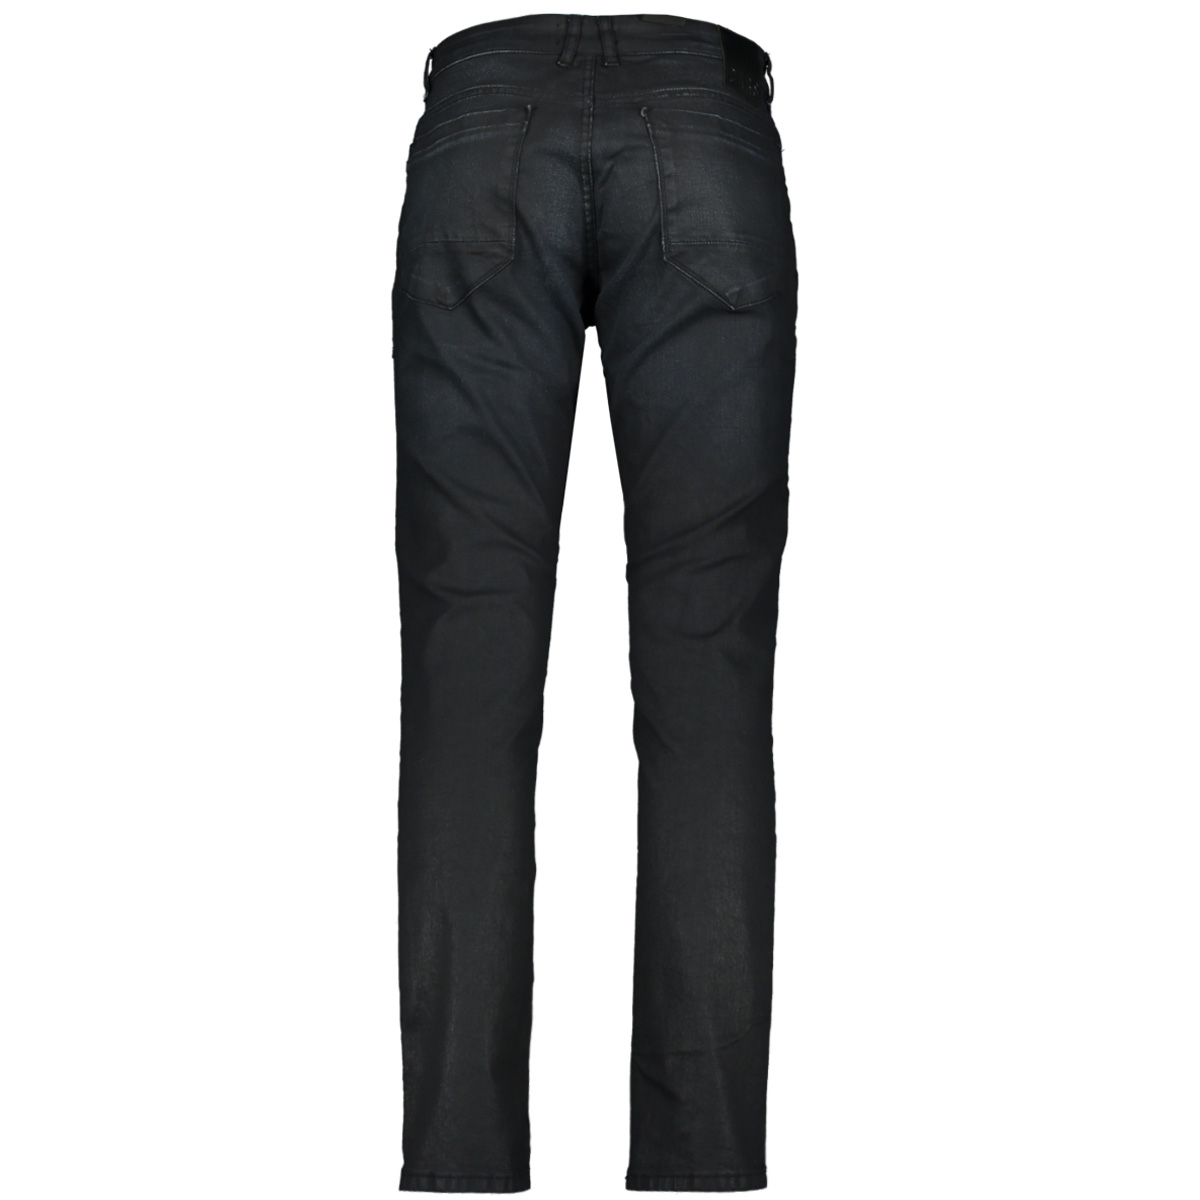 henlow regular 7673821 cars jeans black coated